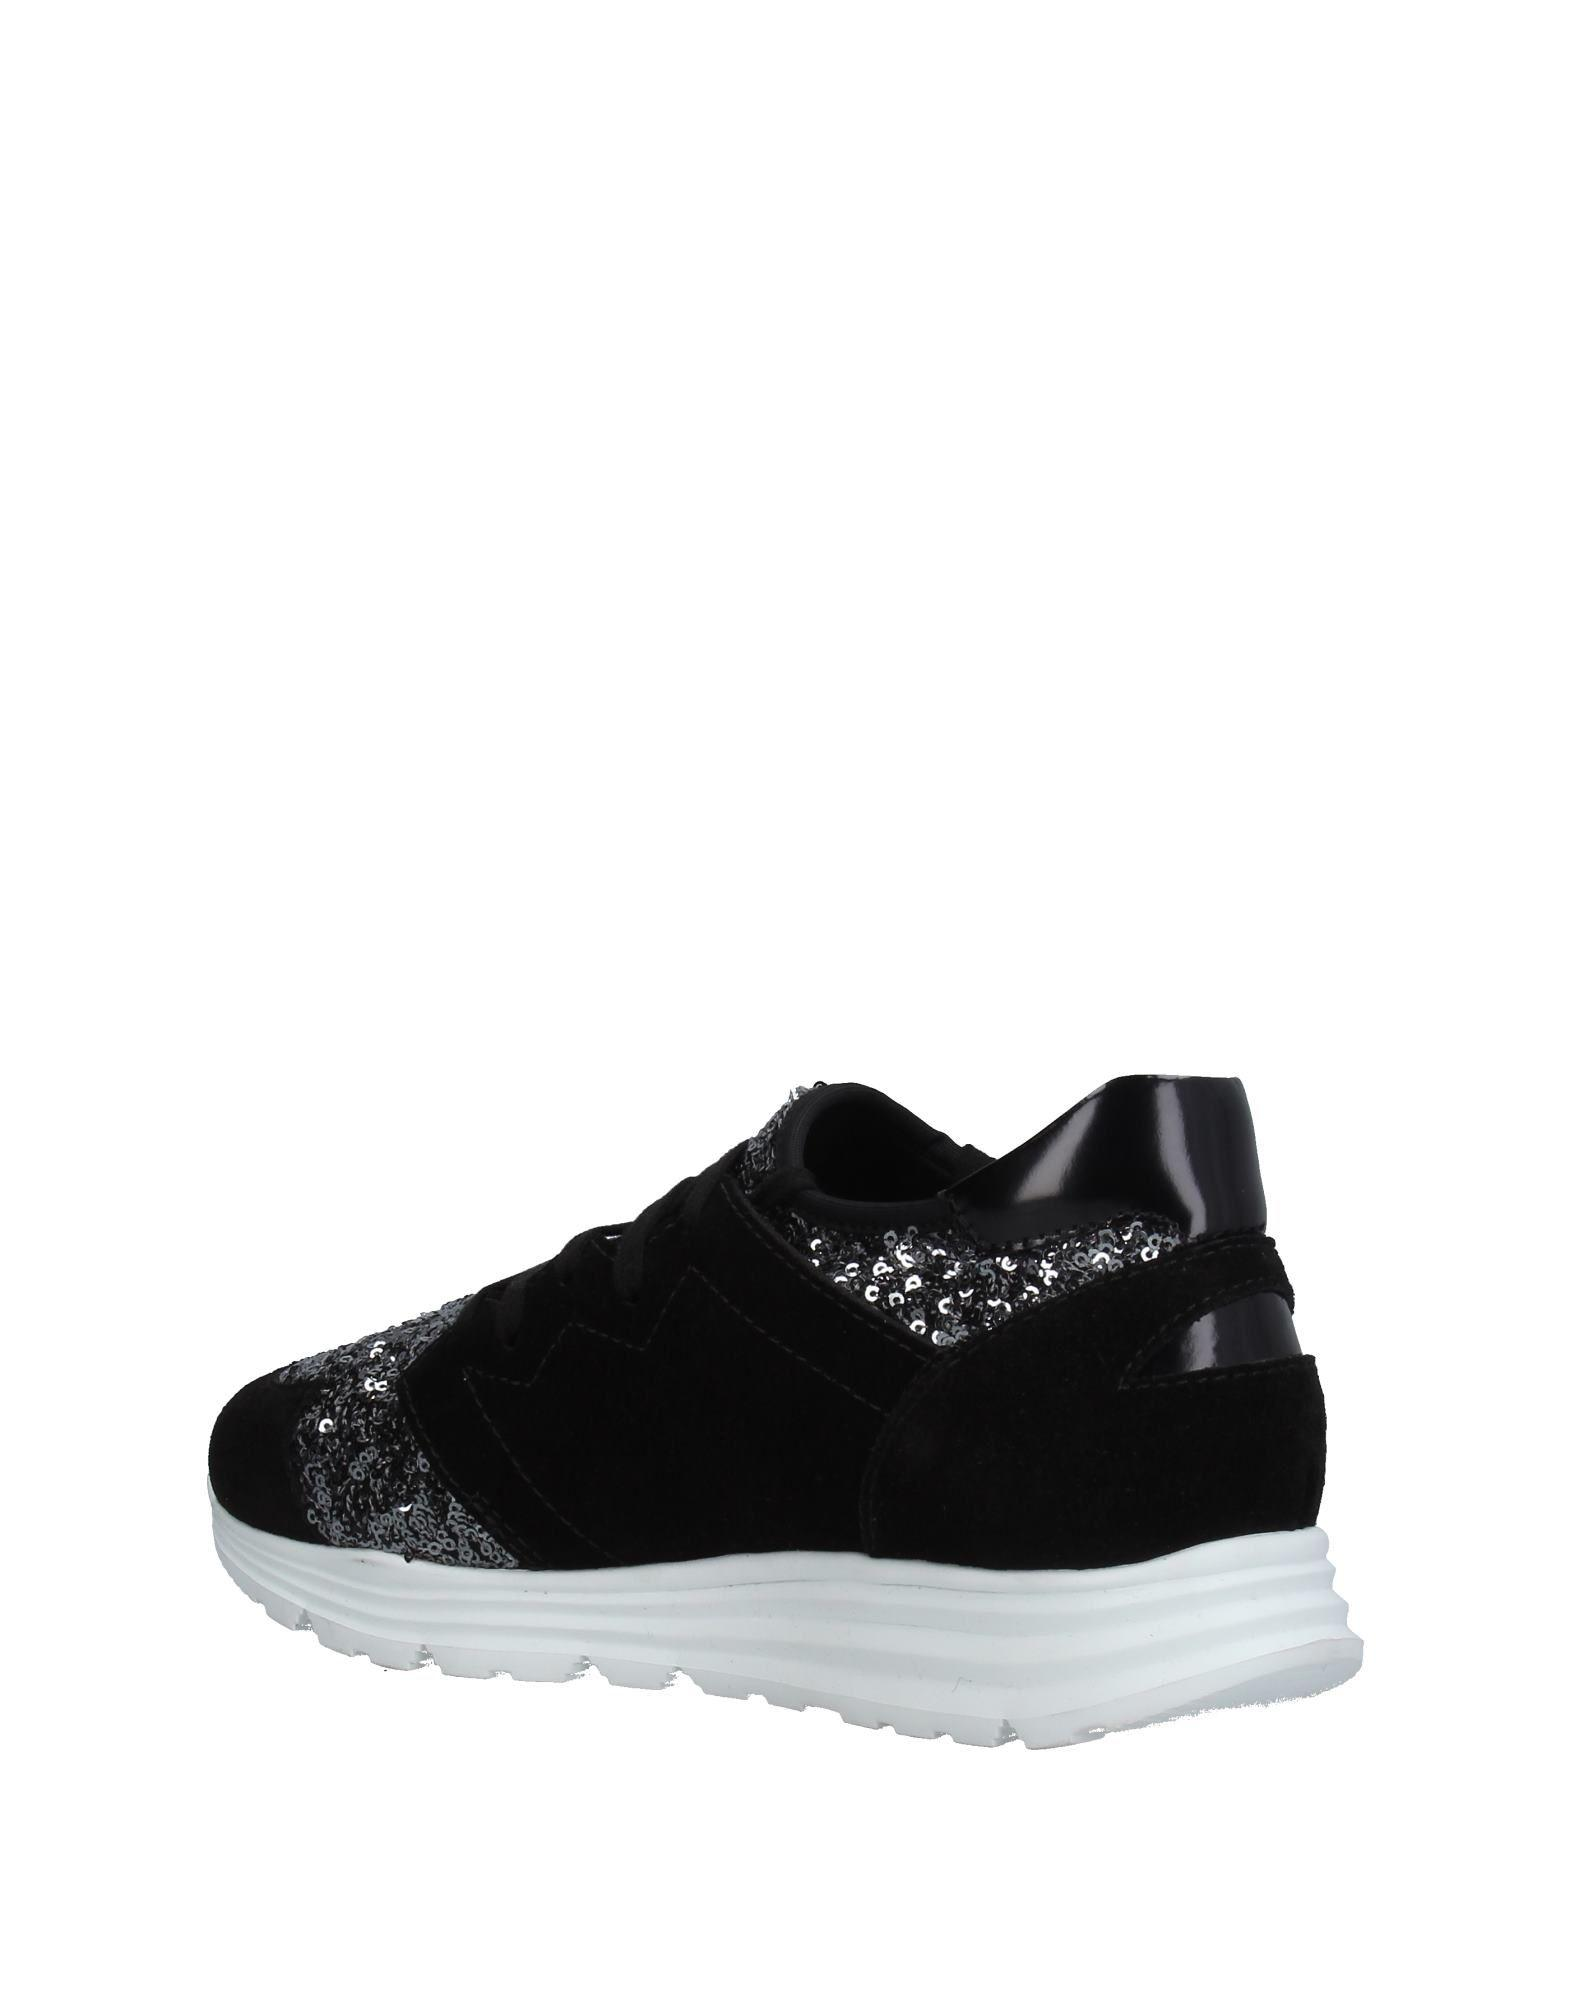 Space Style Concept Leather Low-tops & Sneakers in Black